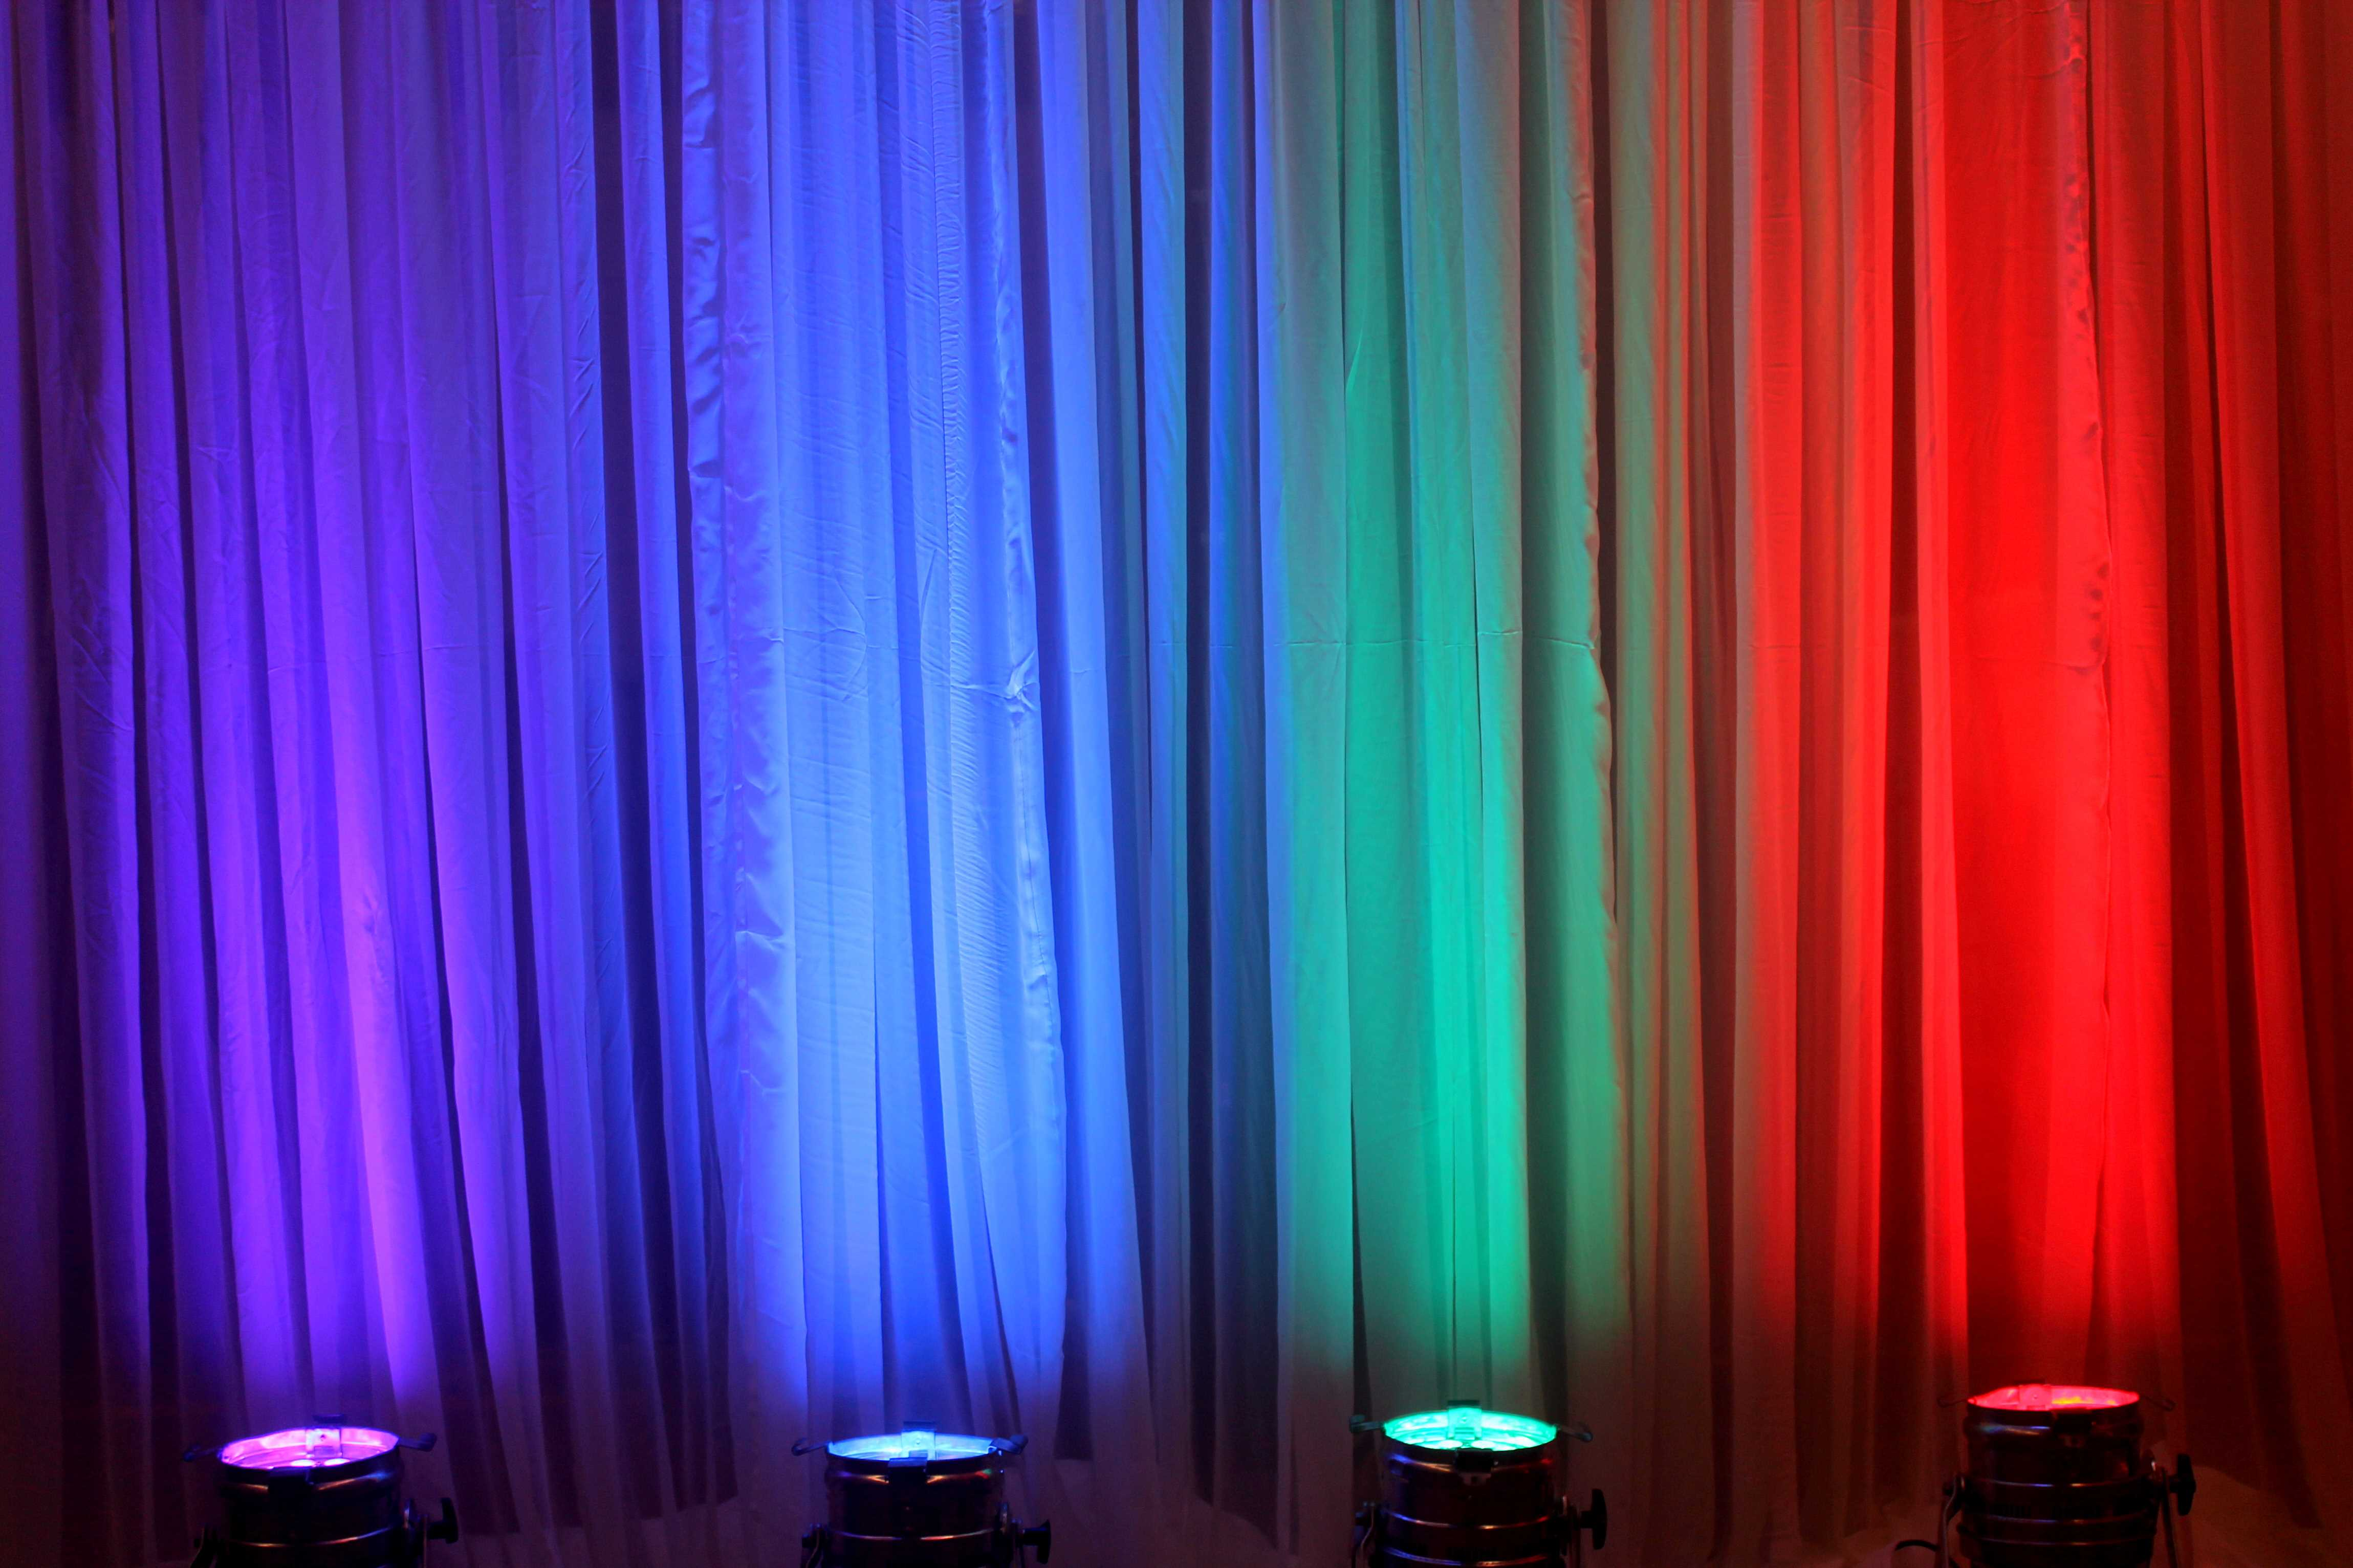 Uplights with or without colored light gels to dramatize your wedding or event